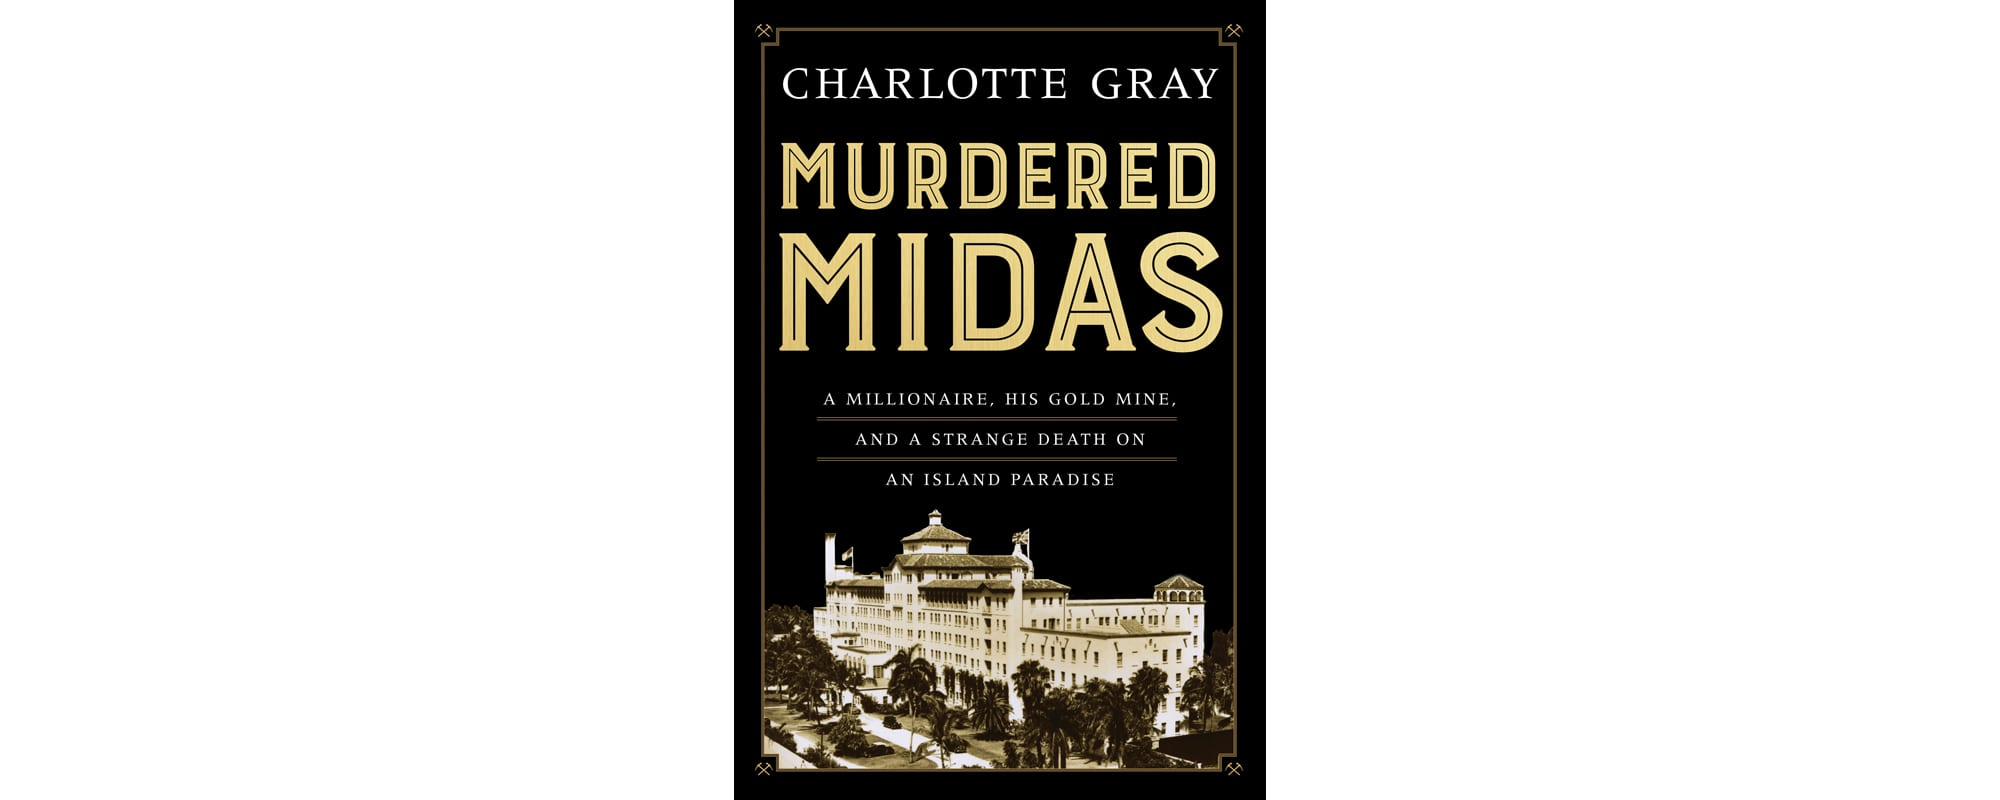 Murdered Midas: A Millionaire, His Gold Mine, and a Strange